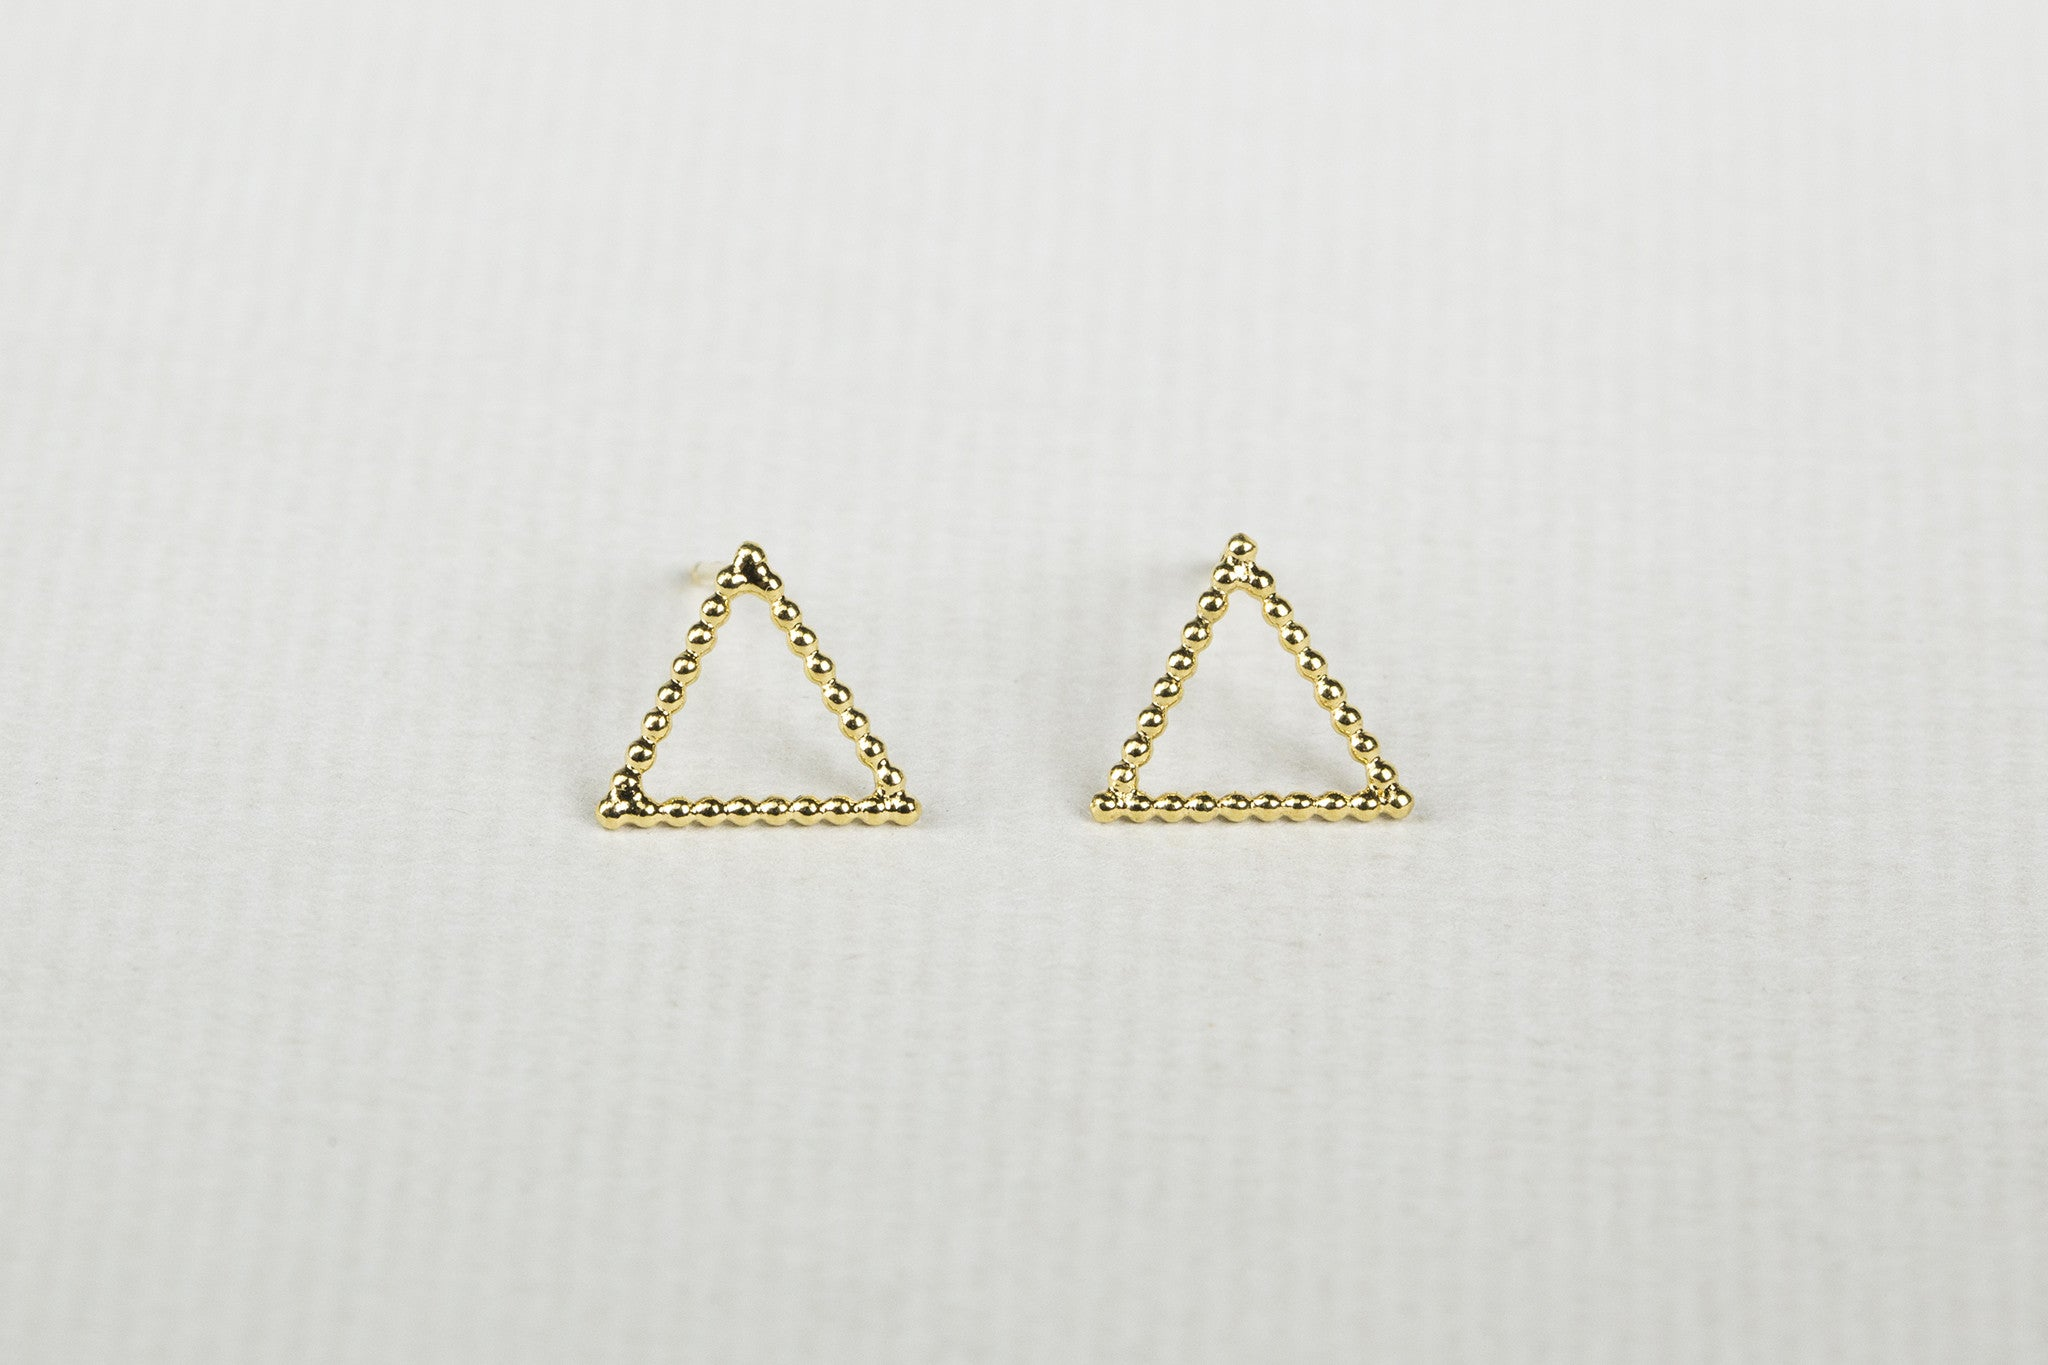 lovely geometric studs made of gold plated silver